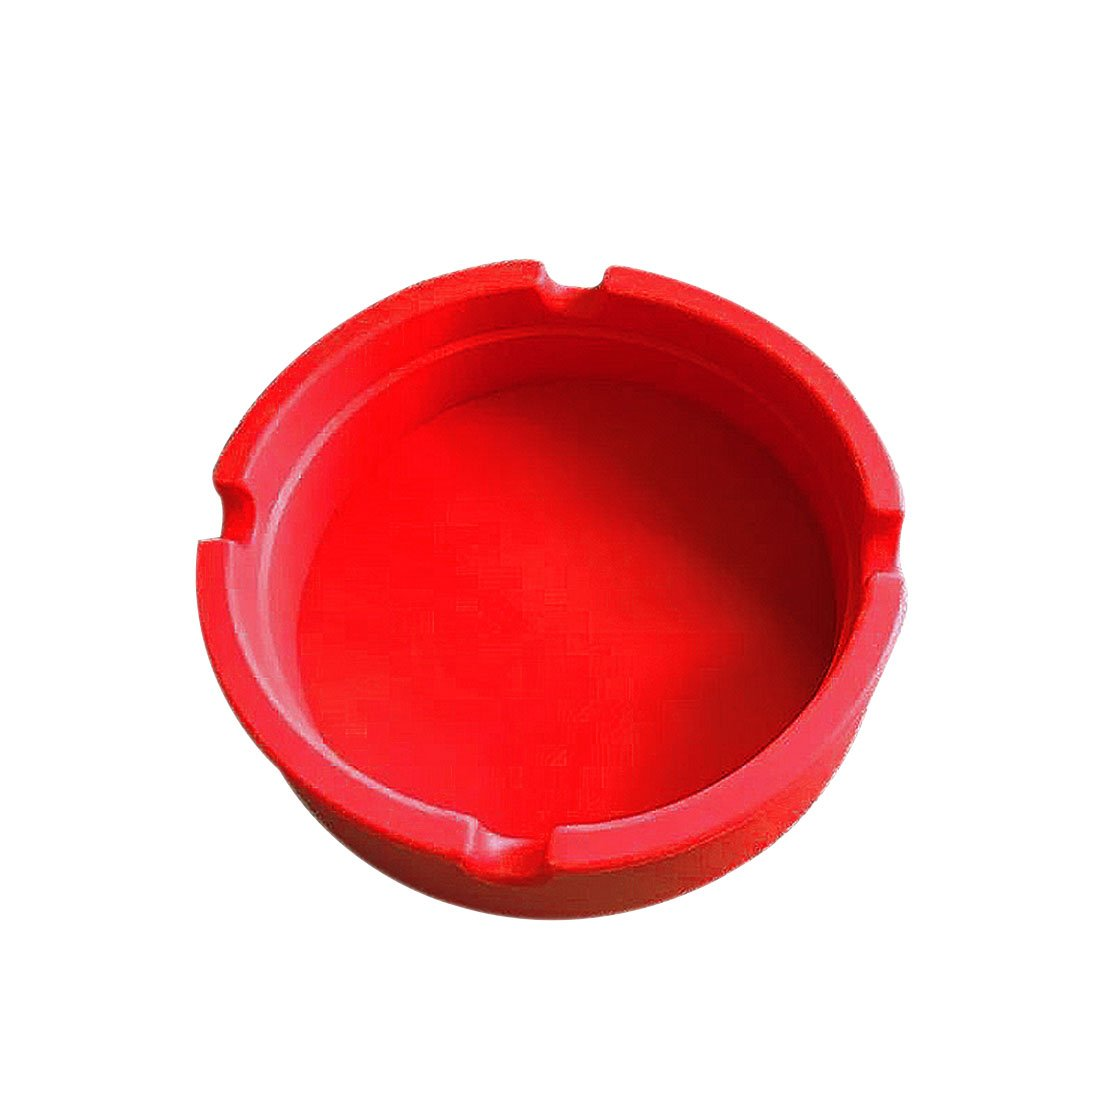 Rubber Silicone Soft Eco-Friendly Heat Resistant Pocket Round Shatterproof Cigar Ashtray Blue